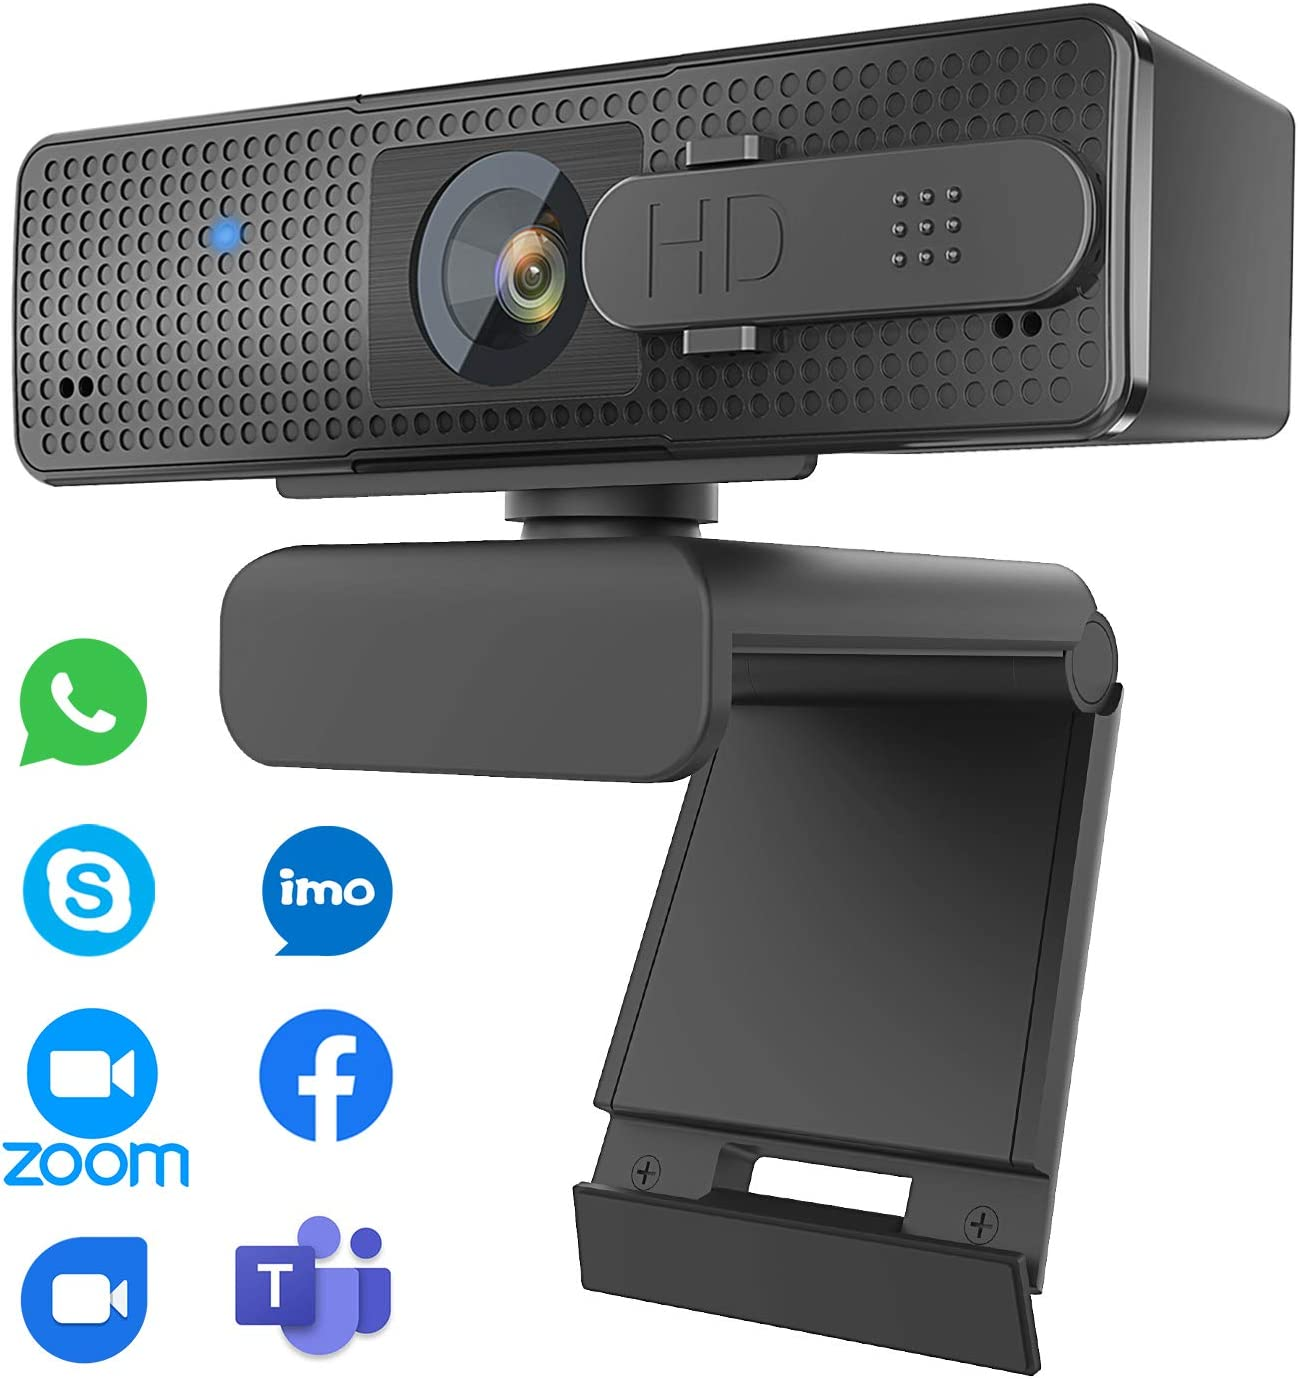 Auto Focus Webcam 1080P with Privacy Cover, Super High Definition Web Cam with Microphone for Zoom, Skype, Conference, Live Streaming Web Camera for Mac OS X Win 10 8 7 Vista XP